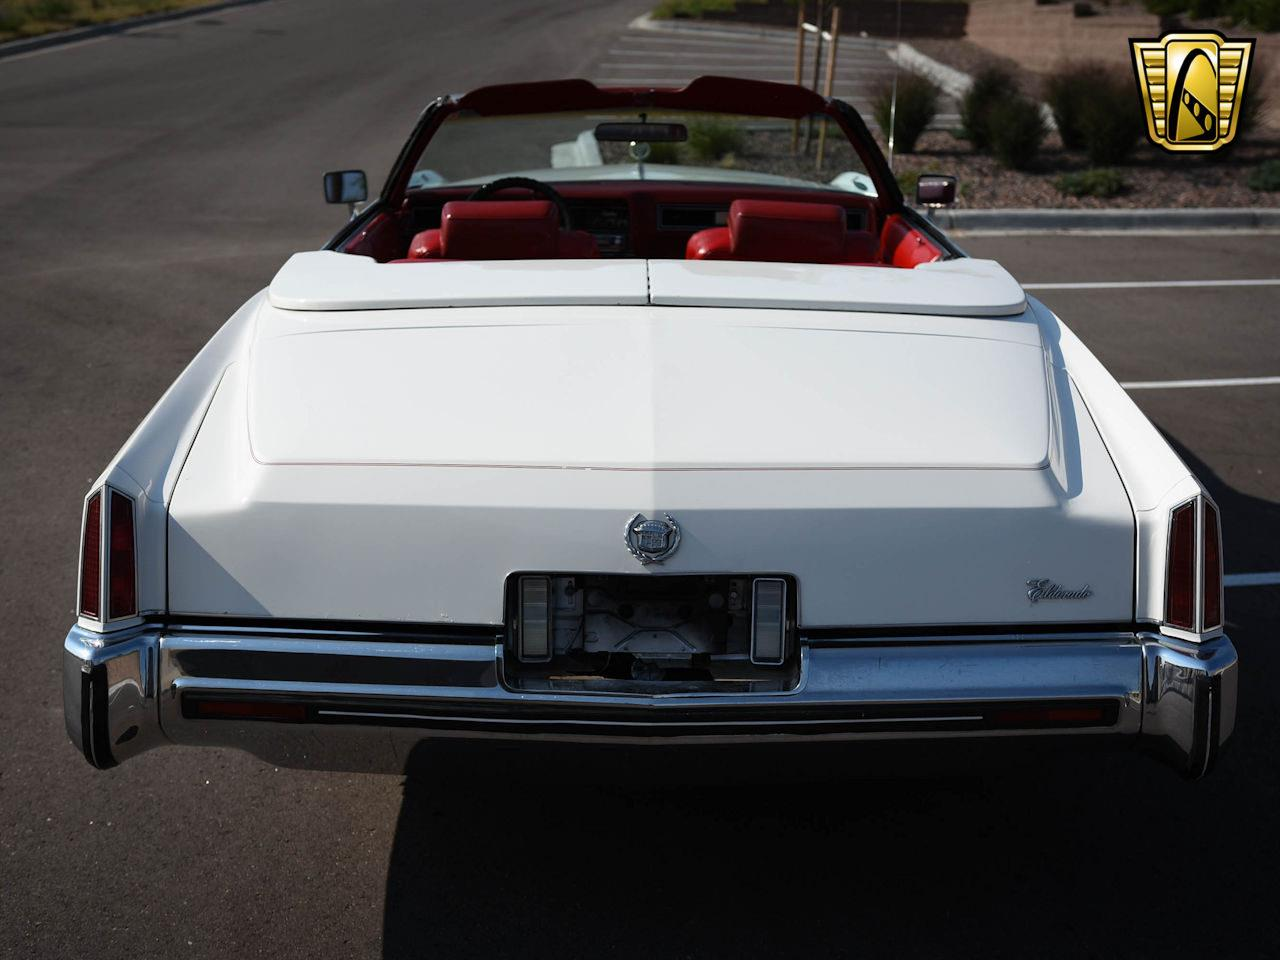 Large Picture of '73 Cadillac Eldorado - $14,595.00 Offered by Gateway Classic Cars - Denver - LT70